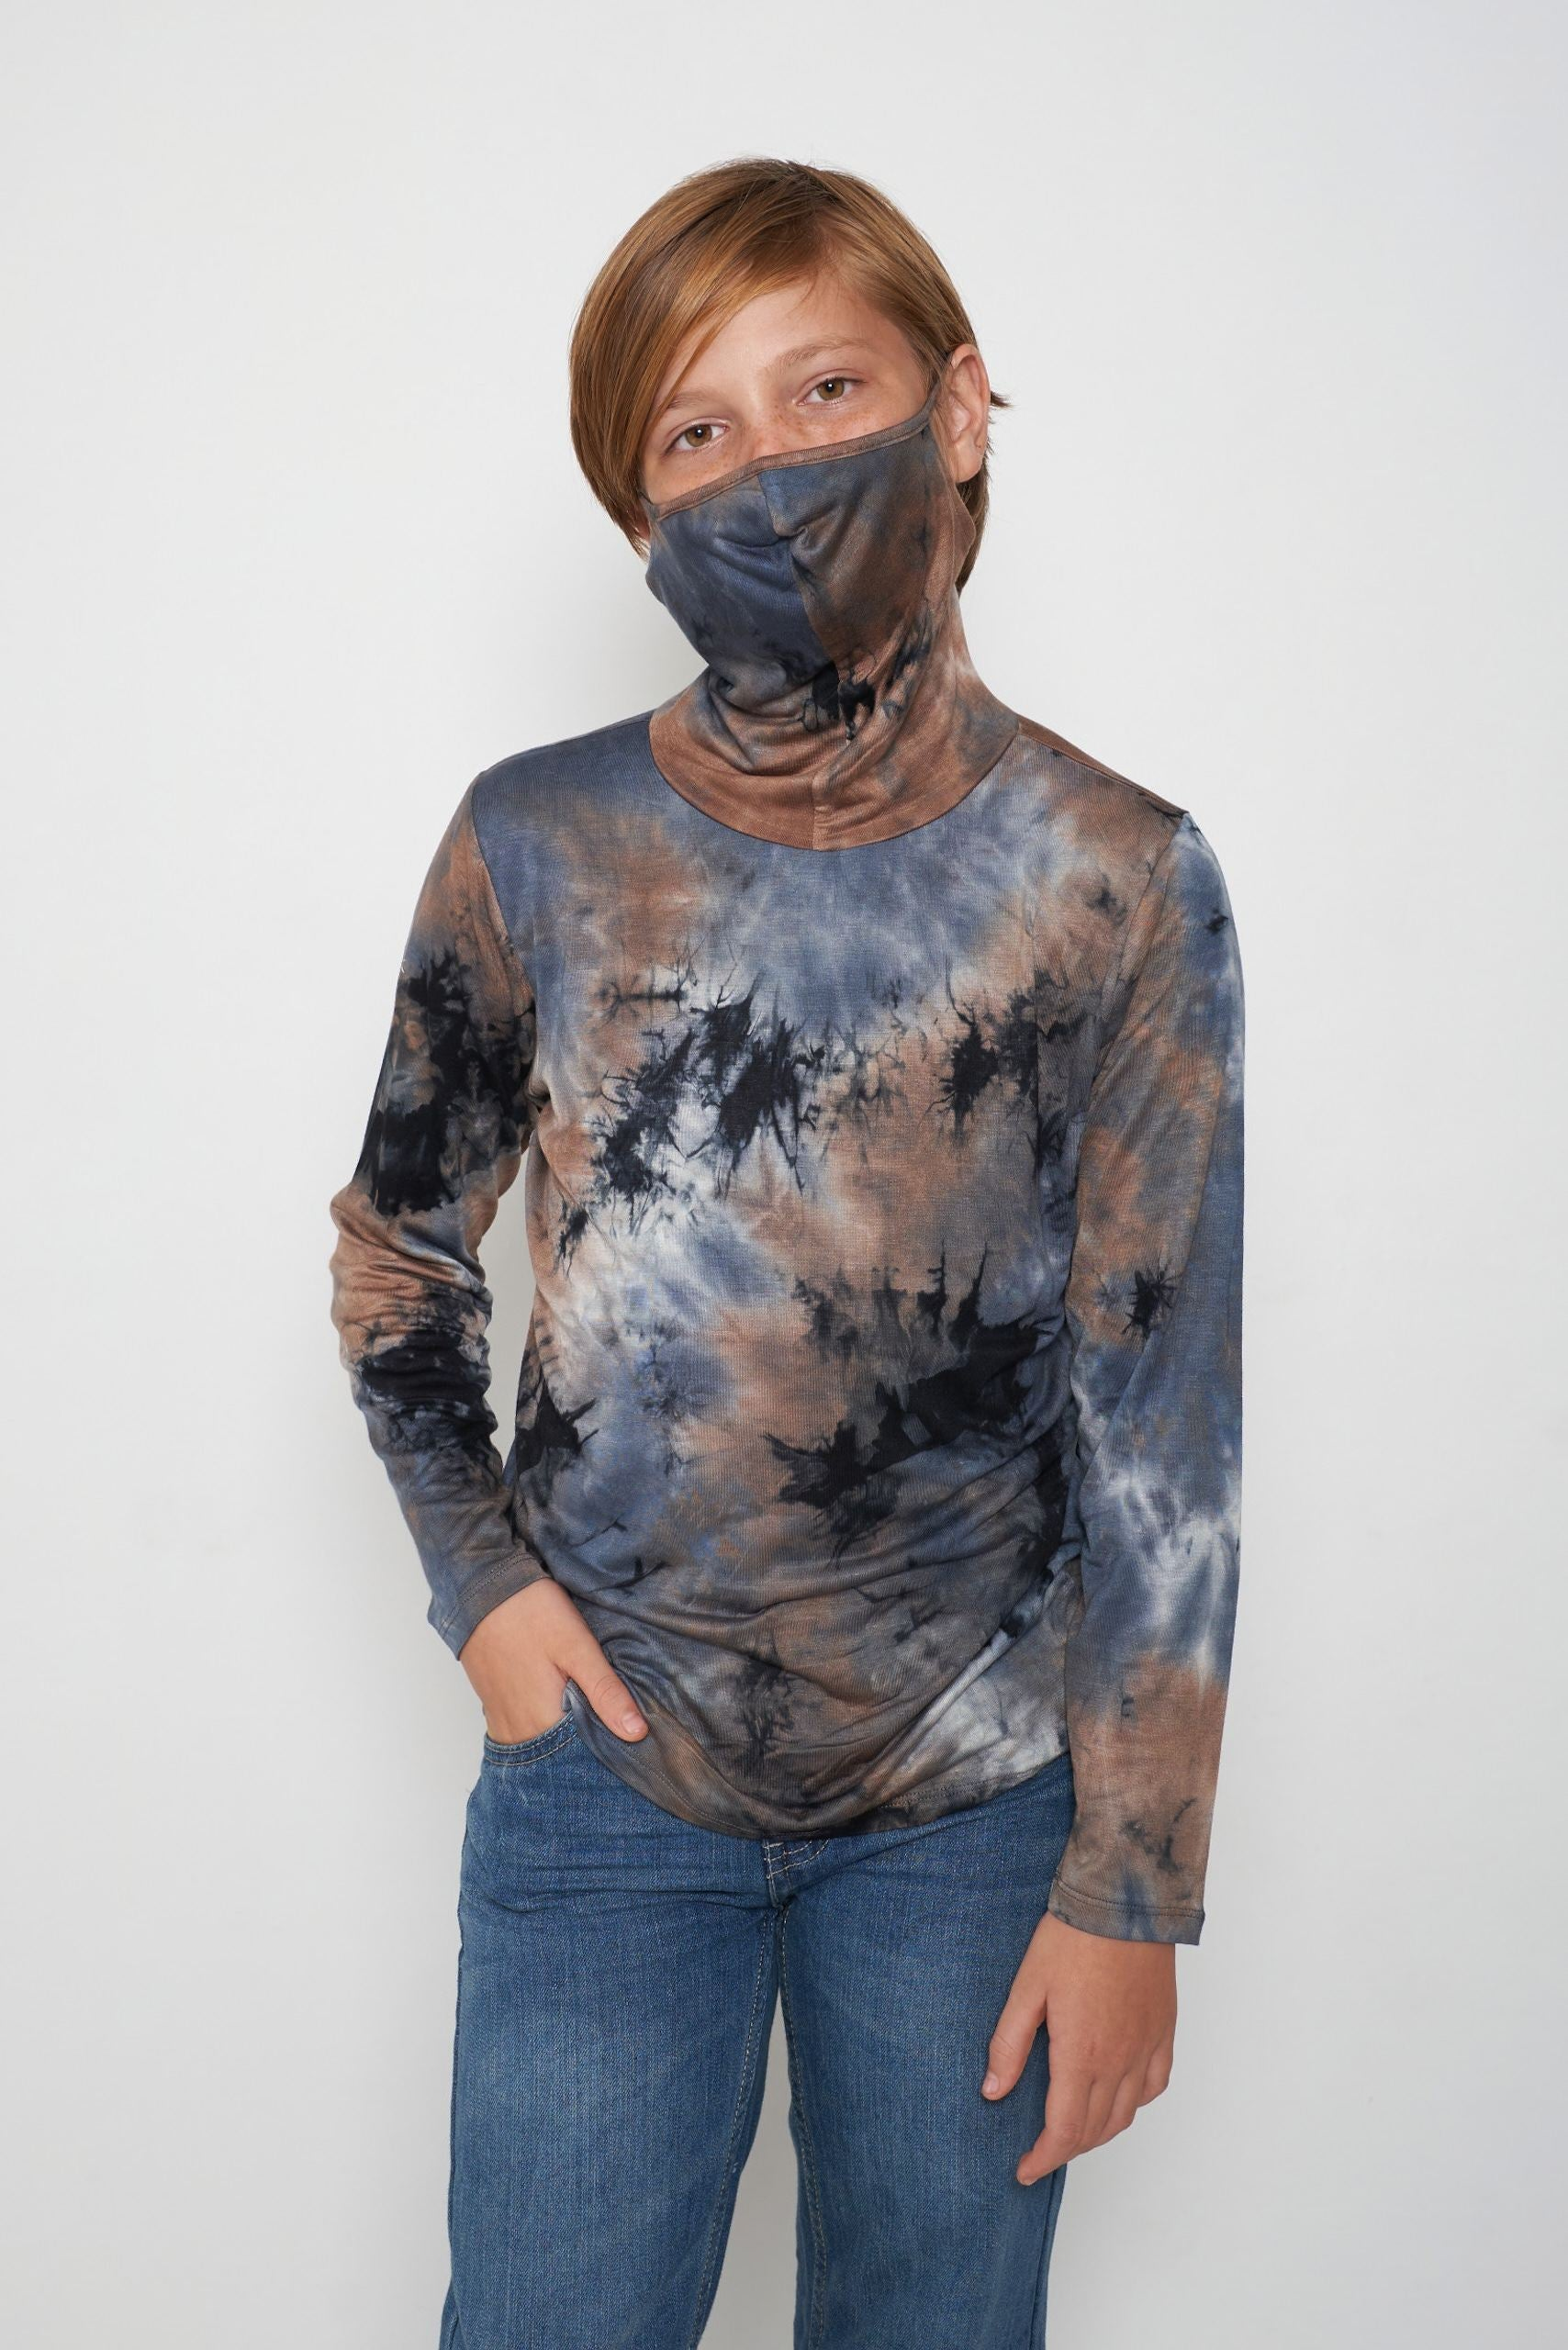 Kids Long Sleeve Blue Gray Black Brown Tie-dye #36 Shmask™ Earloop Face Mask for Kids and Adults